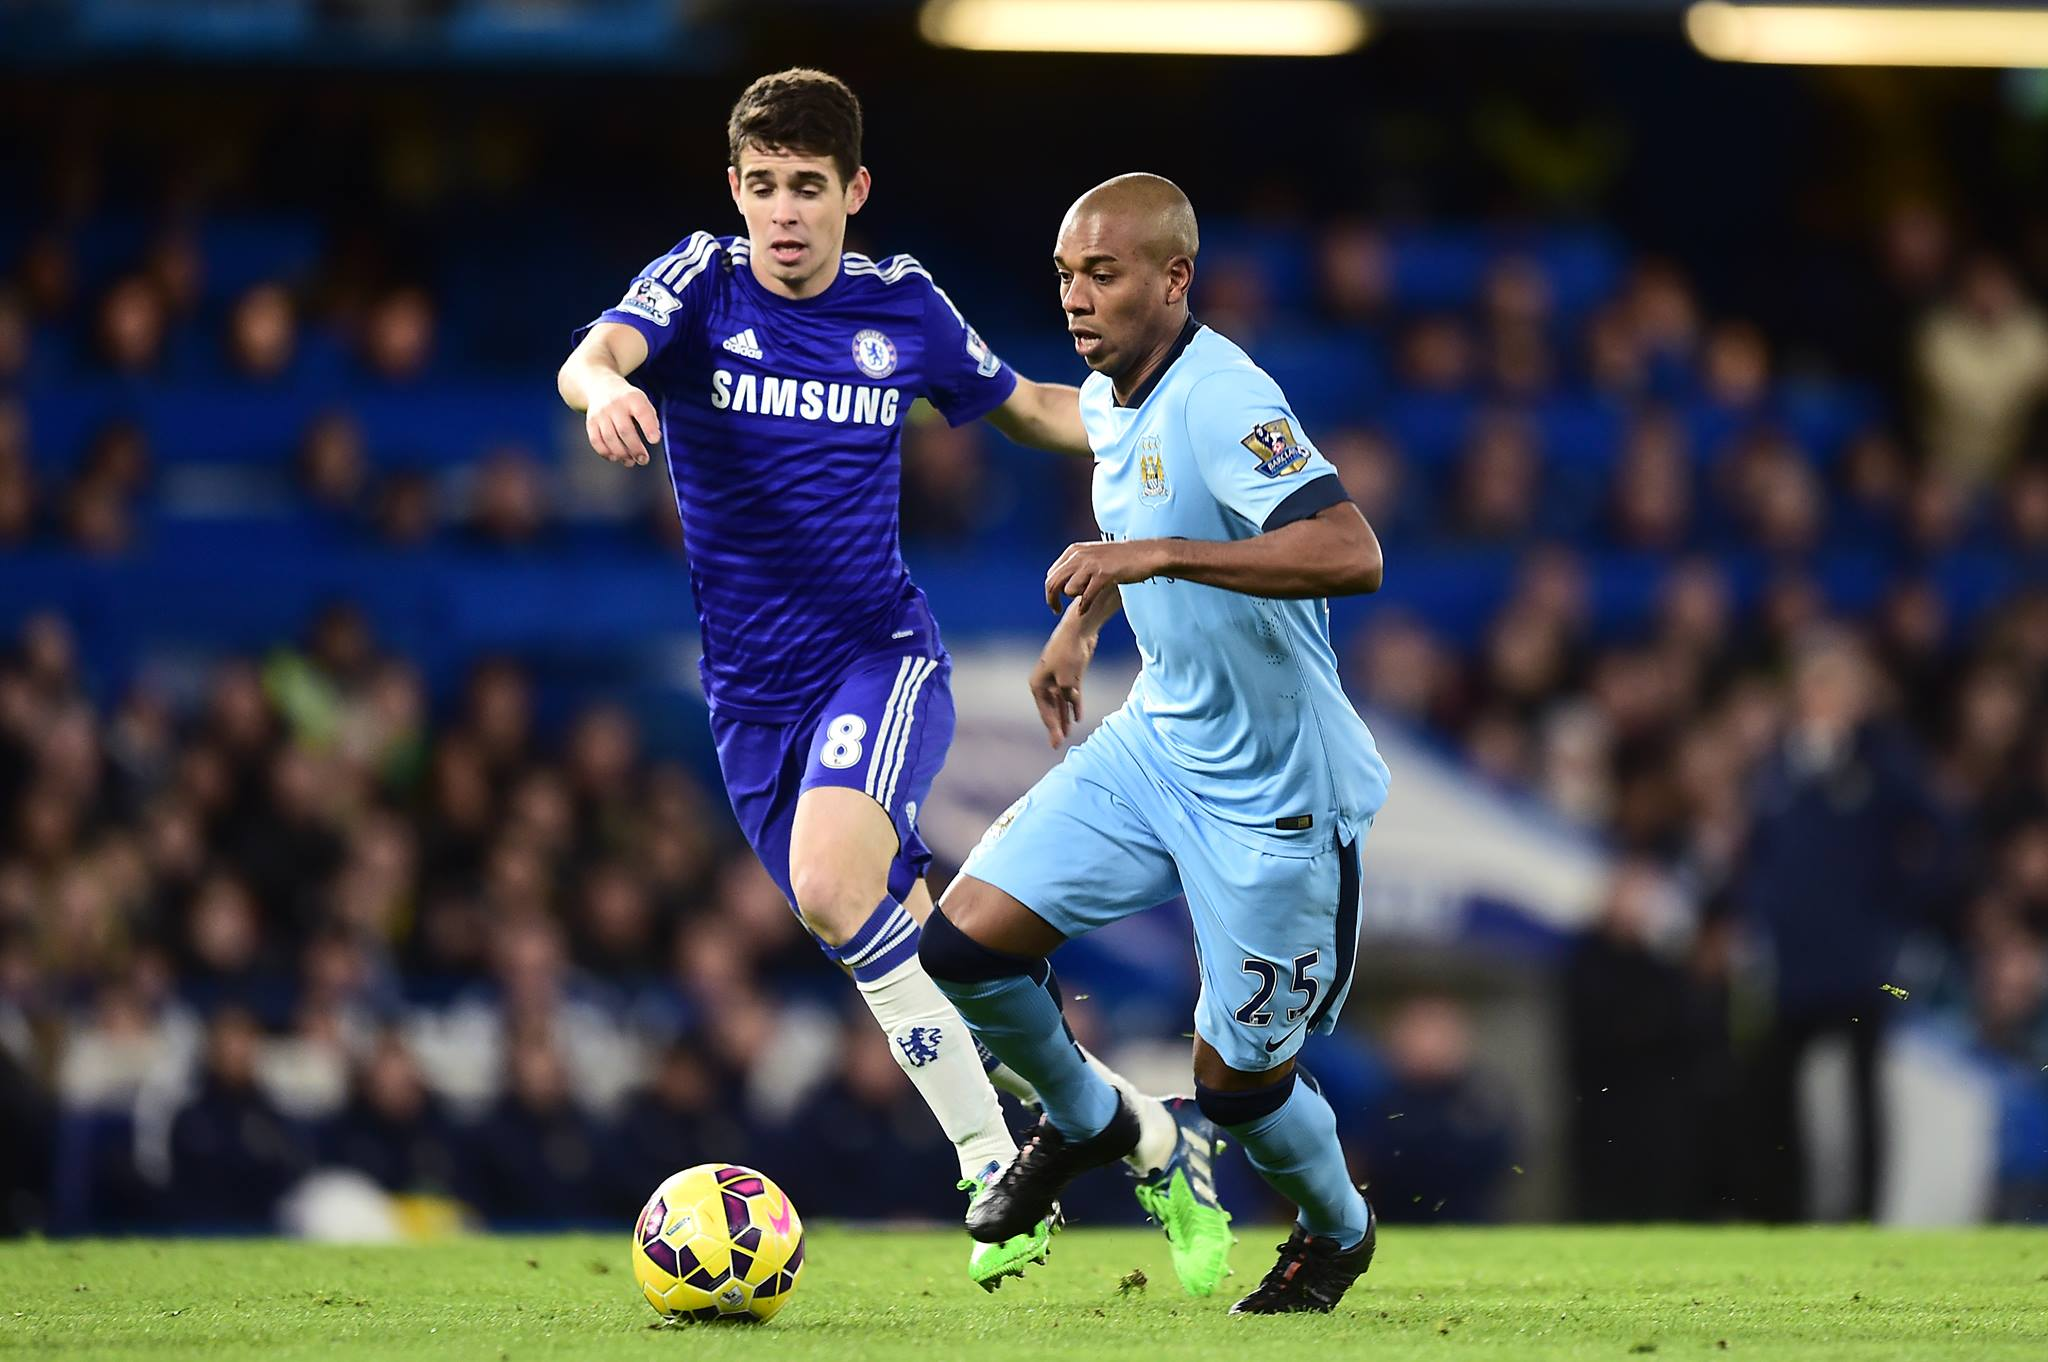 Oscar winning performance - And the award goes to Fernandinho in the 'Tale of Two Brazilians'. Courtesy@MCFC